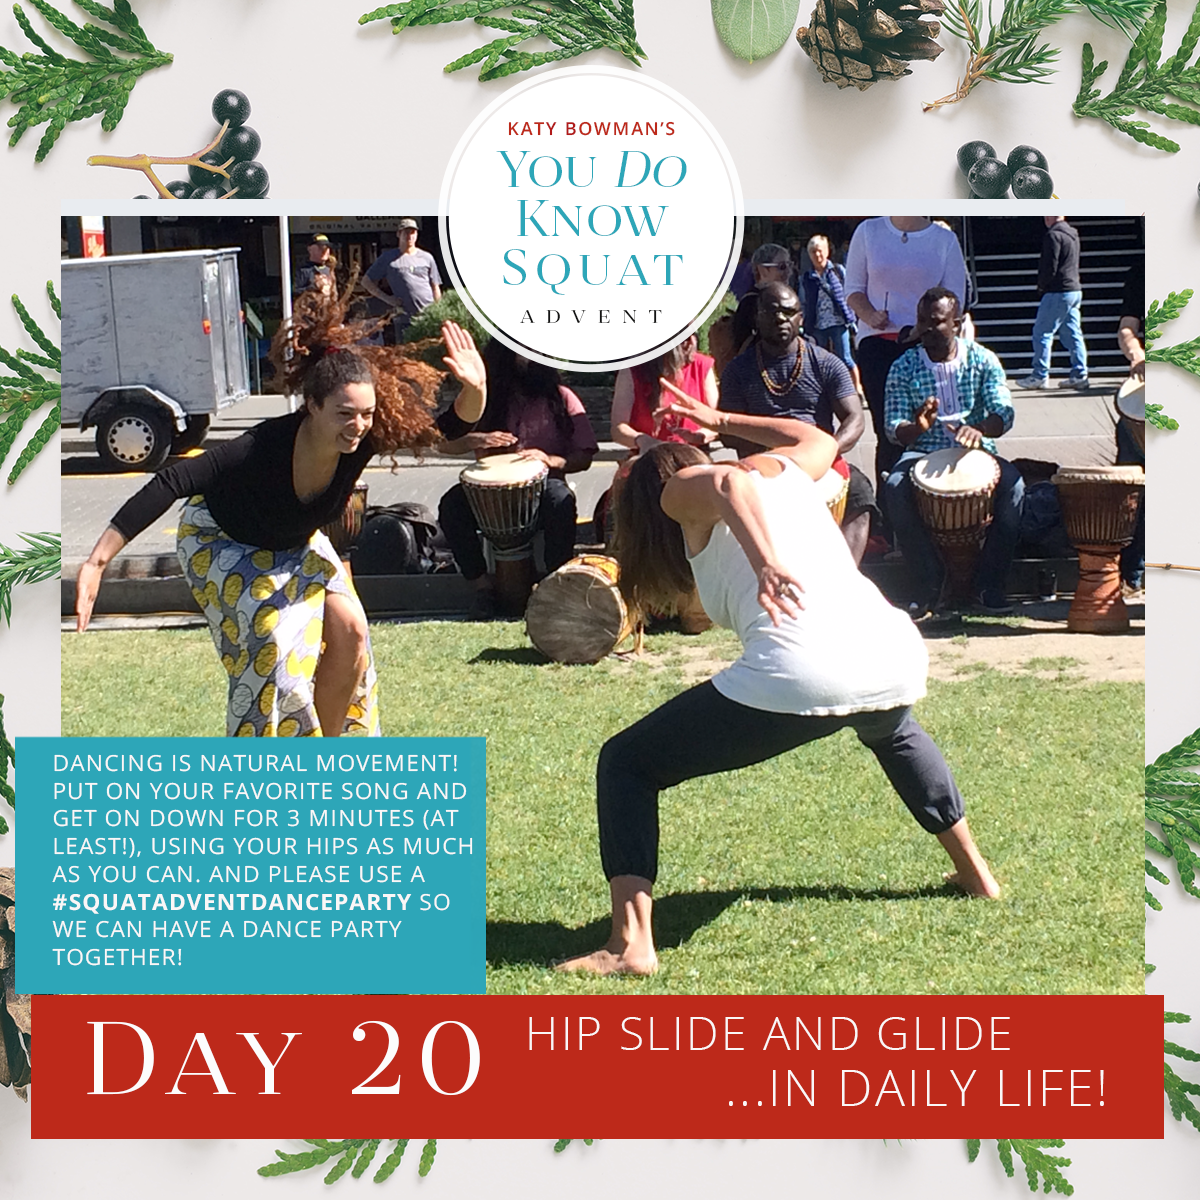 Exercise Advent Calendar 2017 You Do Know Squat Nutritious Movement Animal M Stak 21 Serving Day Cross Legged Stretch Use Your New Skills To Get Down The Floor And Legs In Front Of Place A Pillow Or Two Under Hips